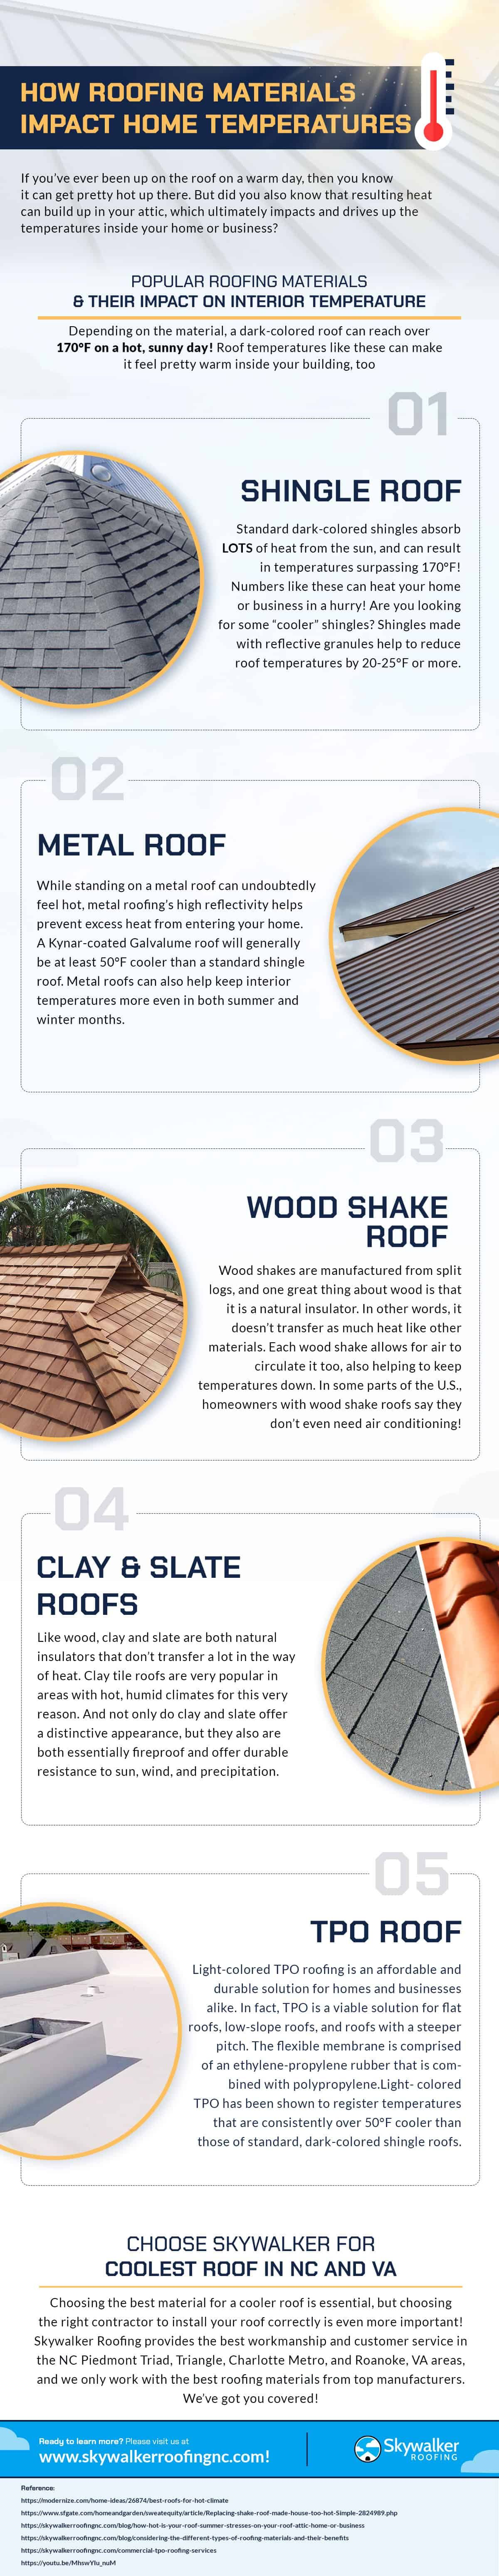 How Roofing Materials Impact Home Temperatures Roofing Materials Roofing Cool Roof